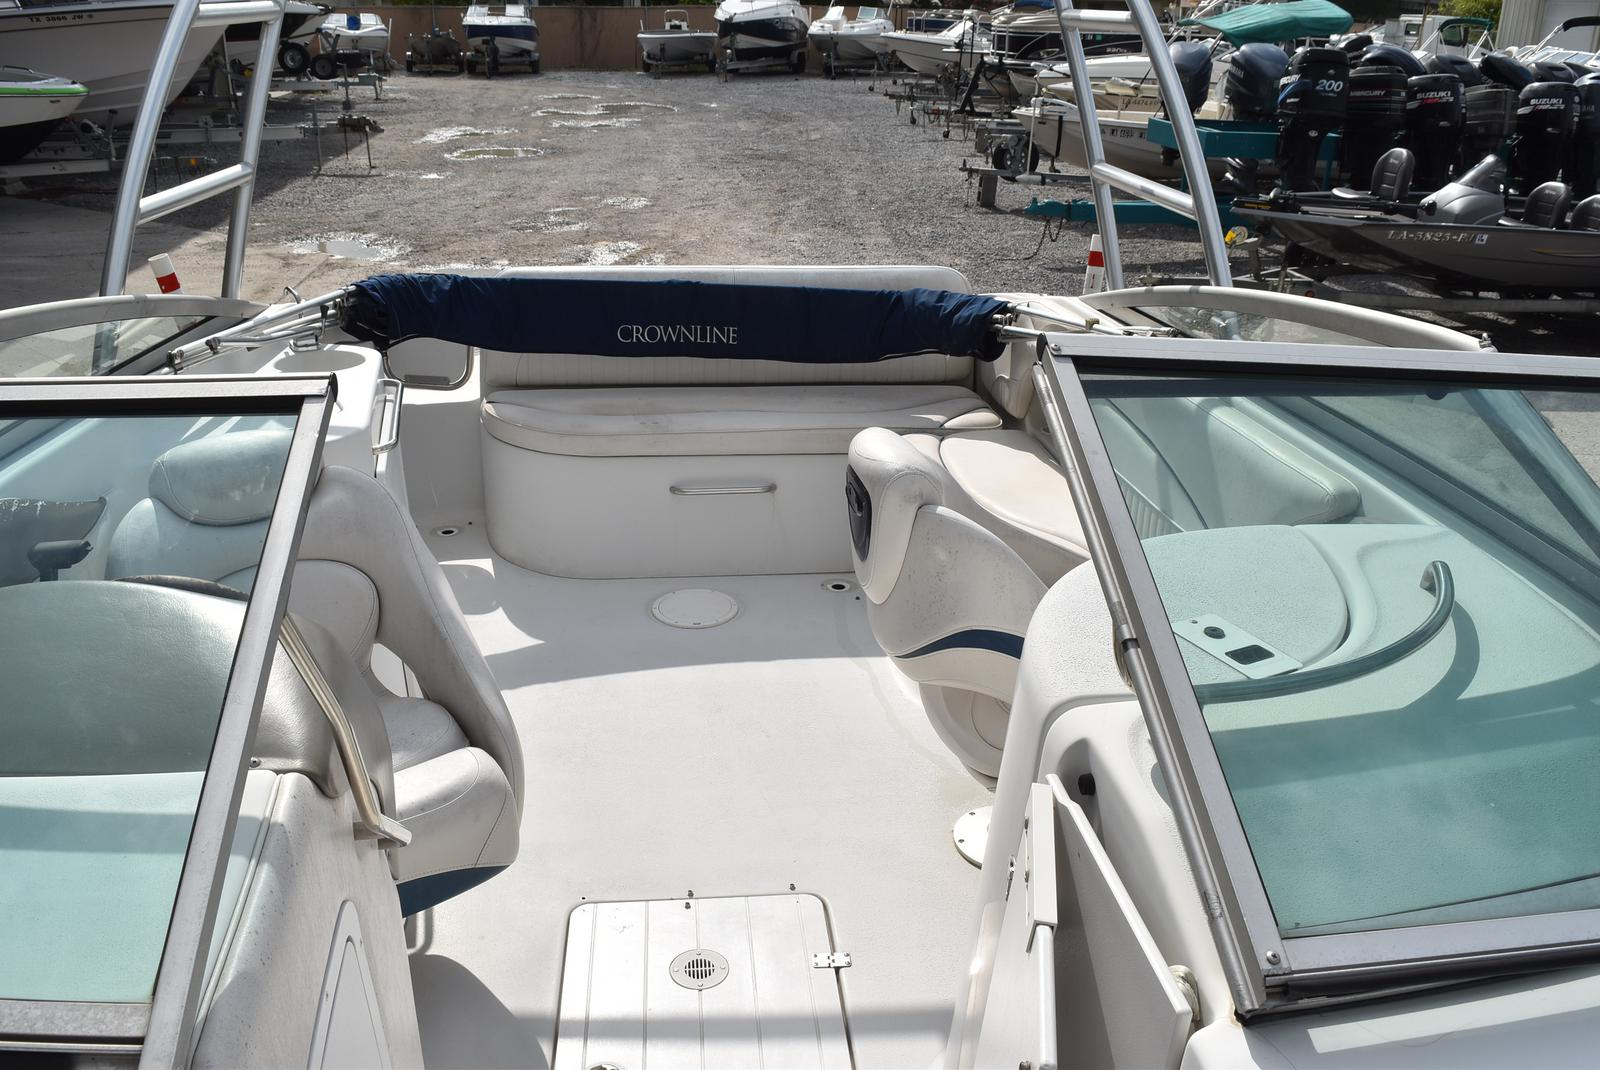 2003 Crownline boat for sale, model of the boat is 230 BR & Image # 10 of 16